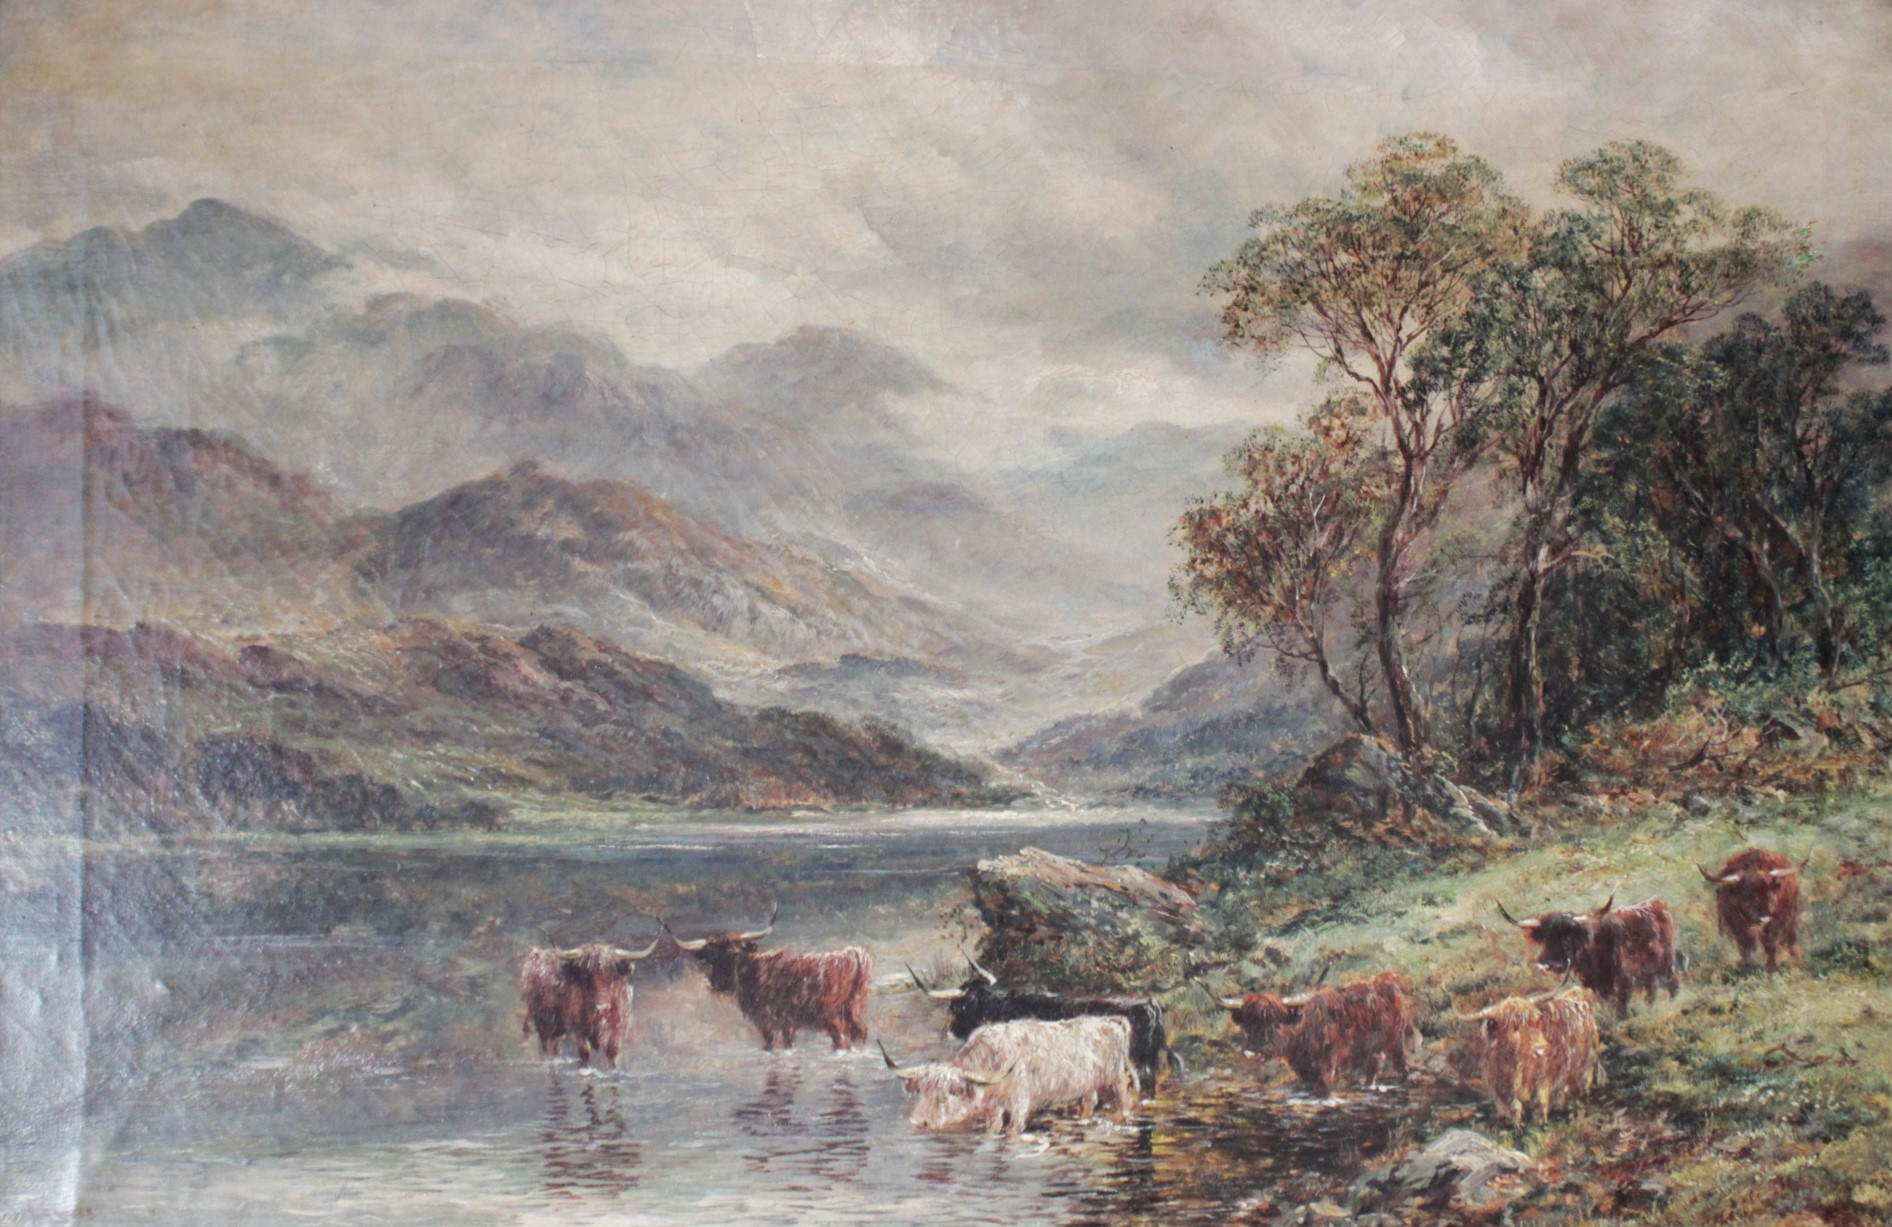 J. Lewis (English school, 19th century), Two mountainous landscapes with highland cattle, Oil on